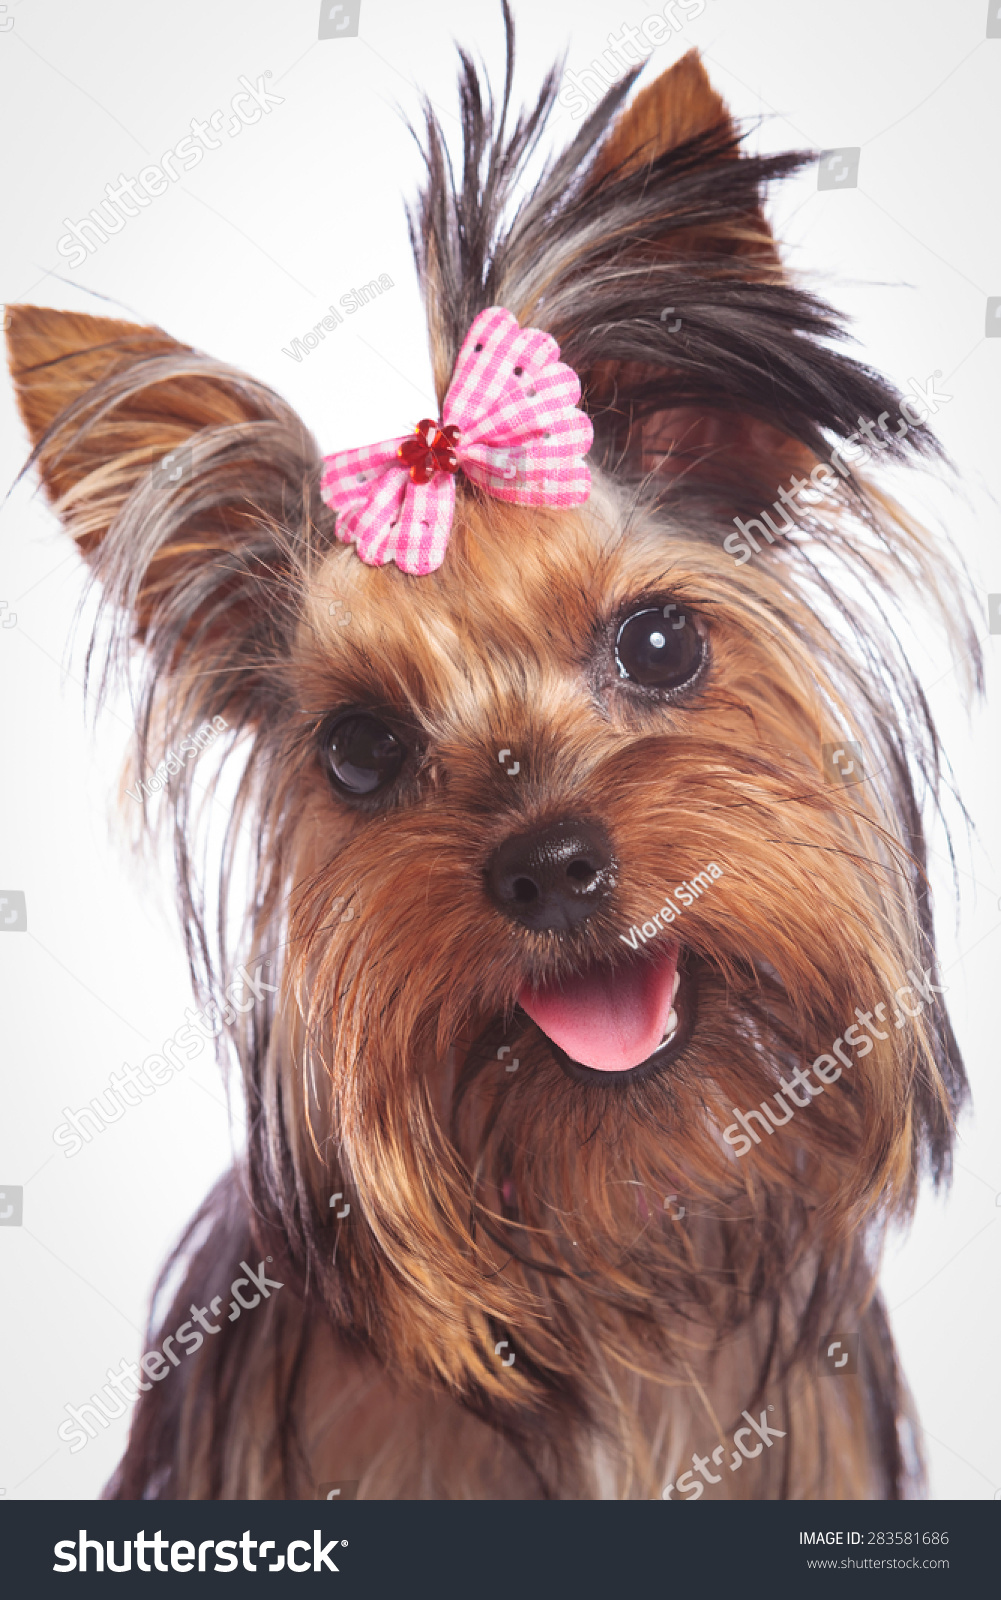 Face Of A Cute Yorkshire Terrier Baby Dog Looking Happy On Studio